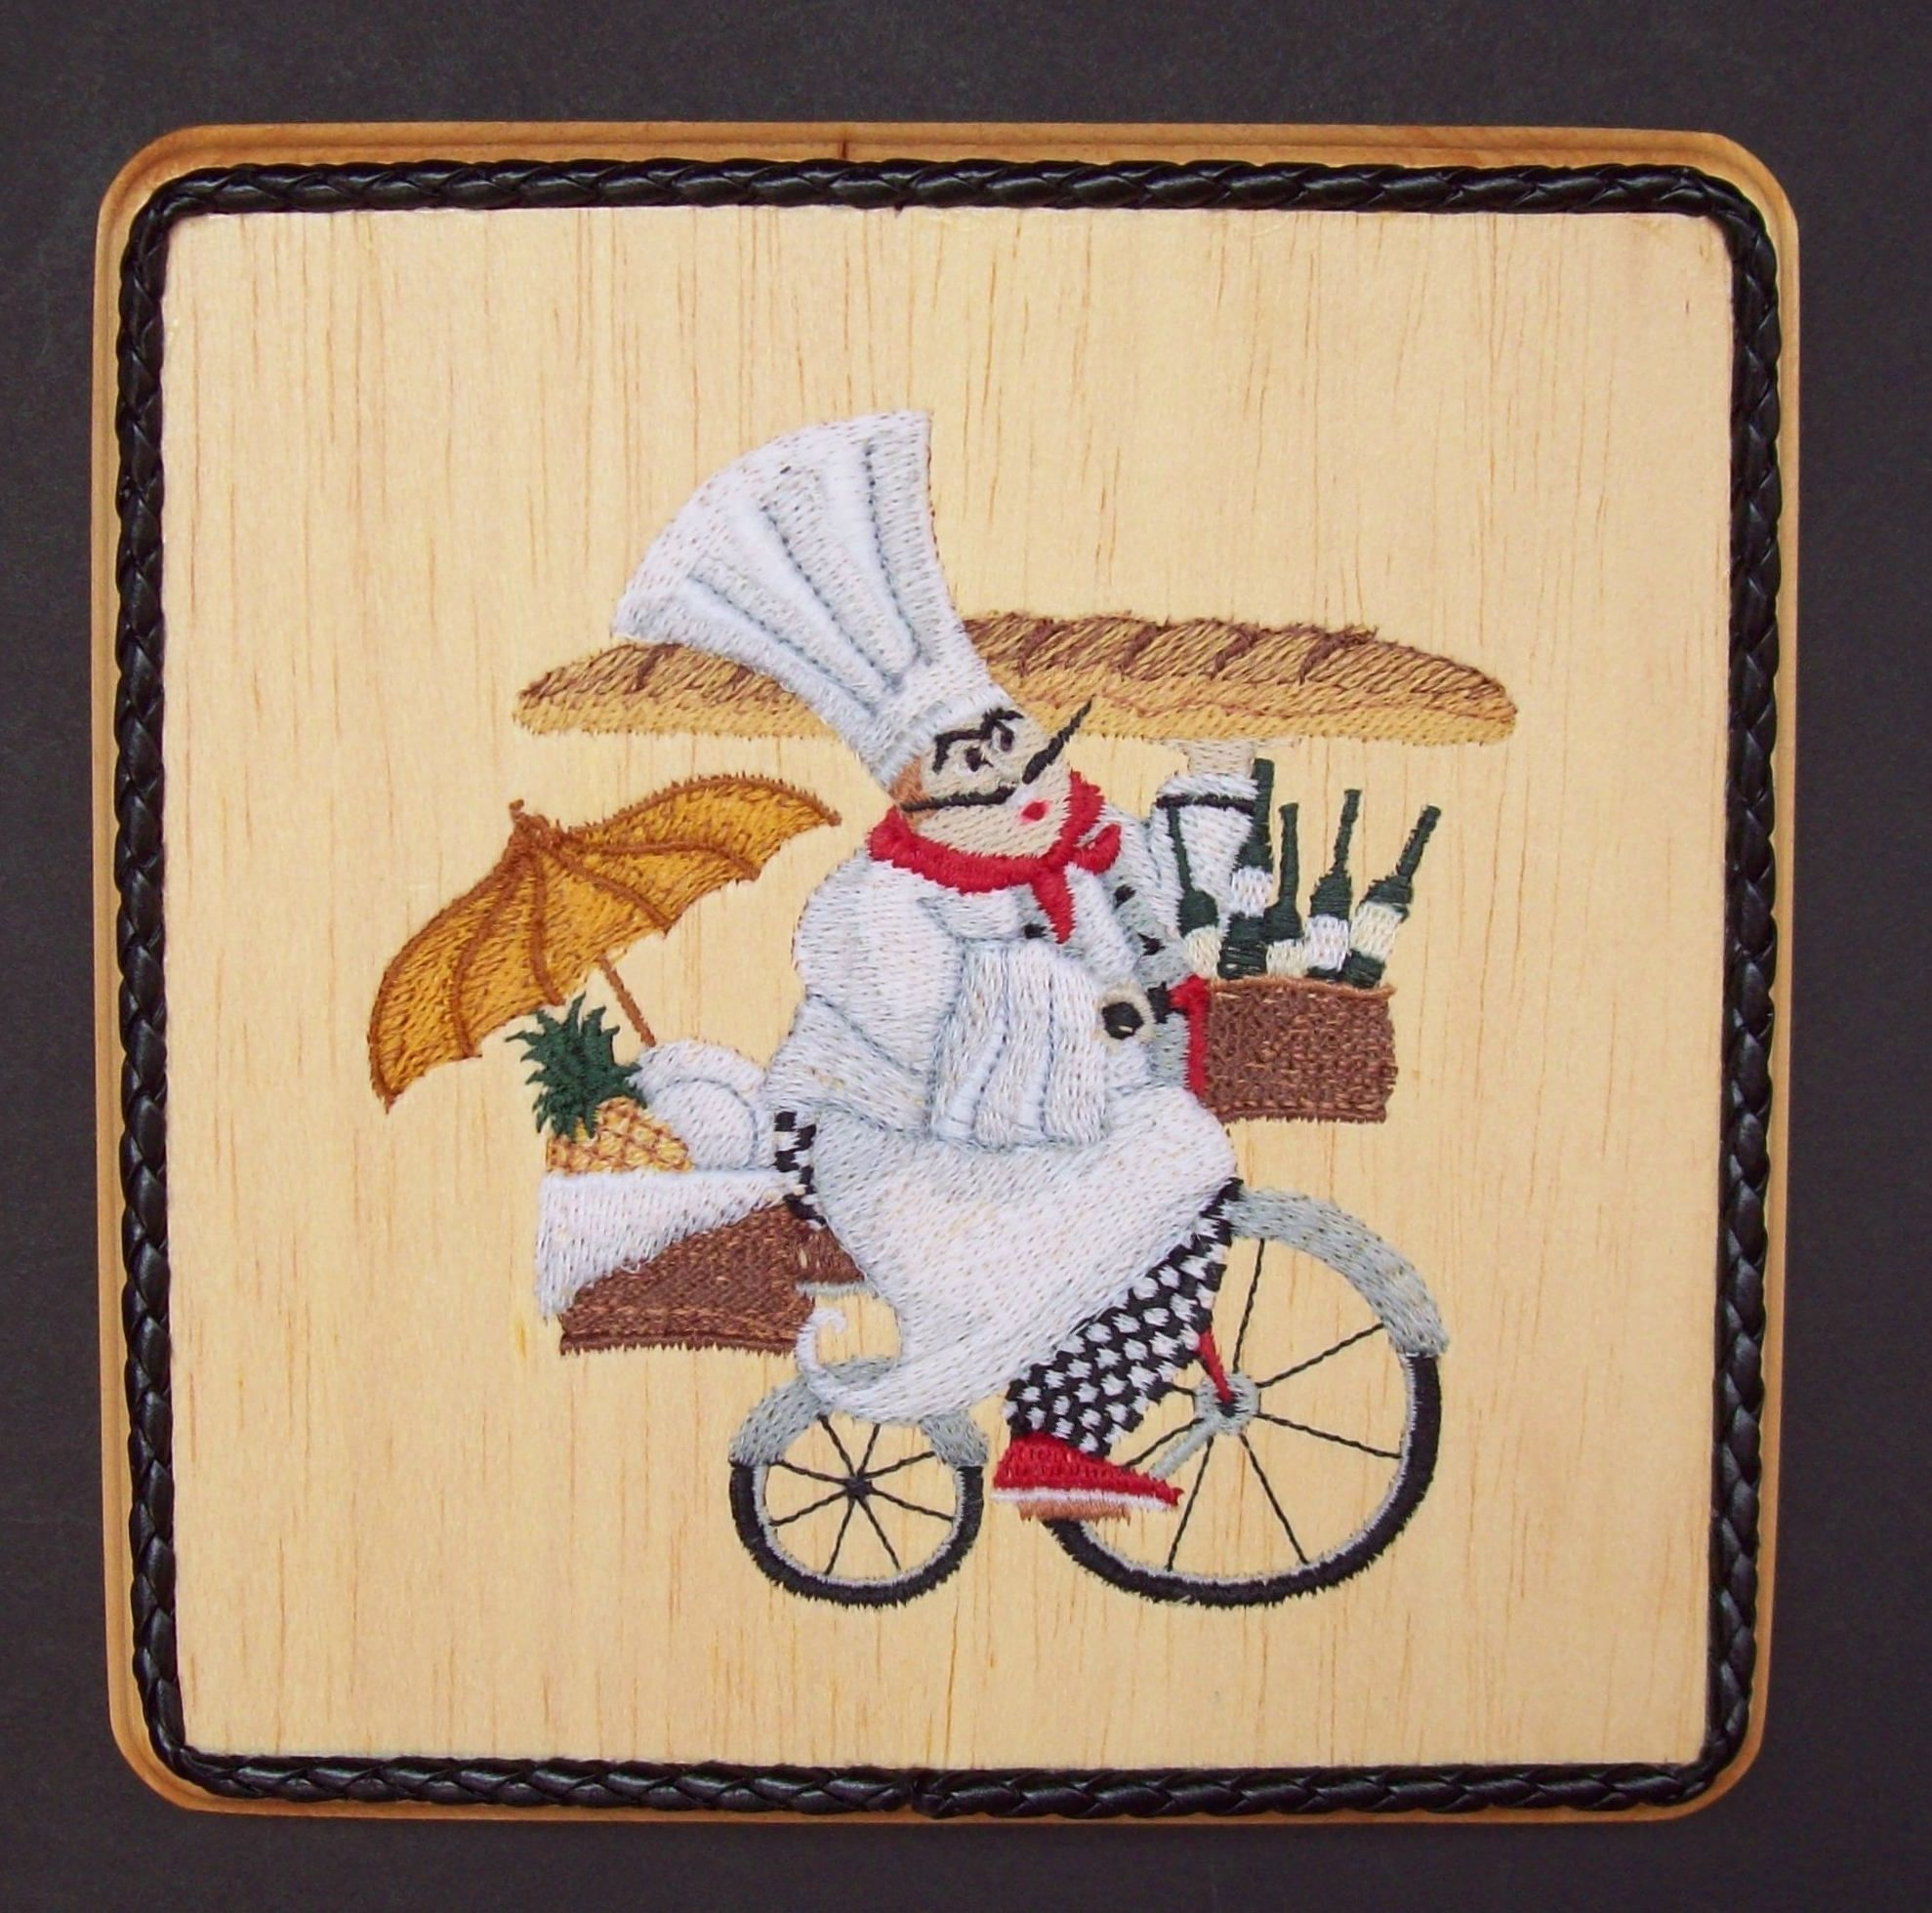 French Chef Embroidery Wood Art, Kitchen Wall Decor, French Country ...